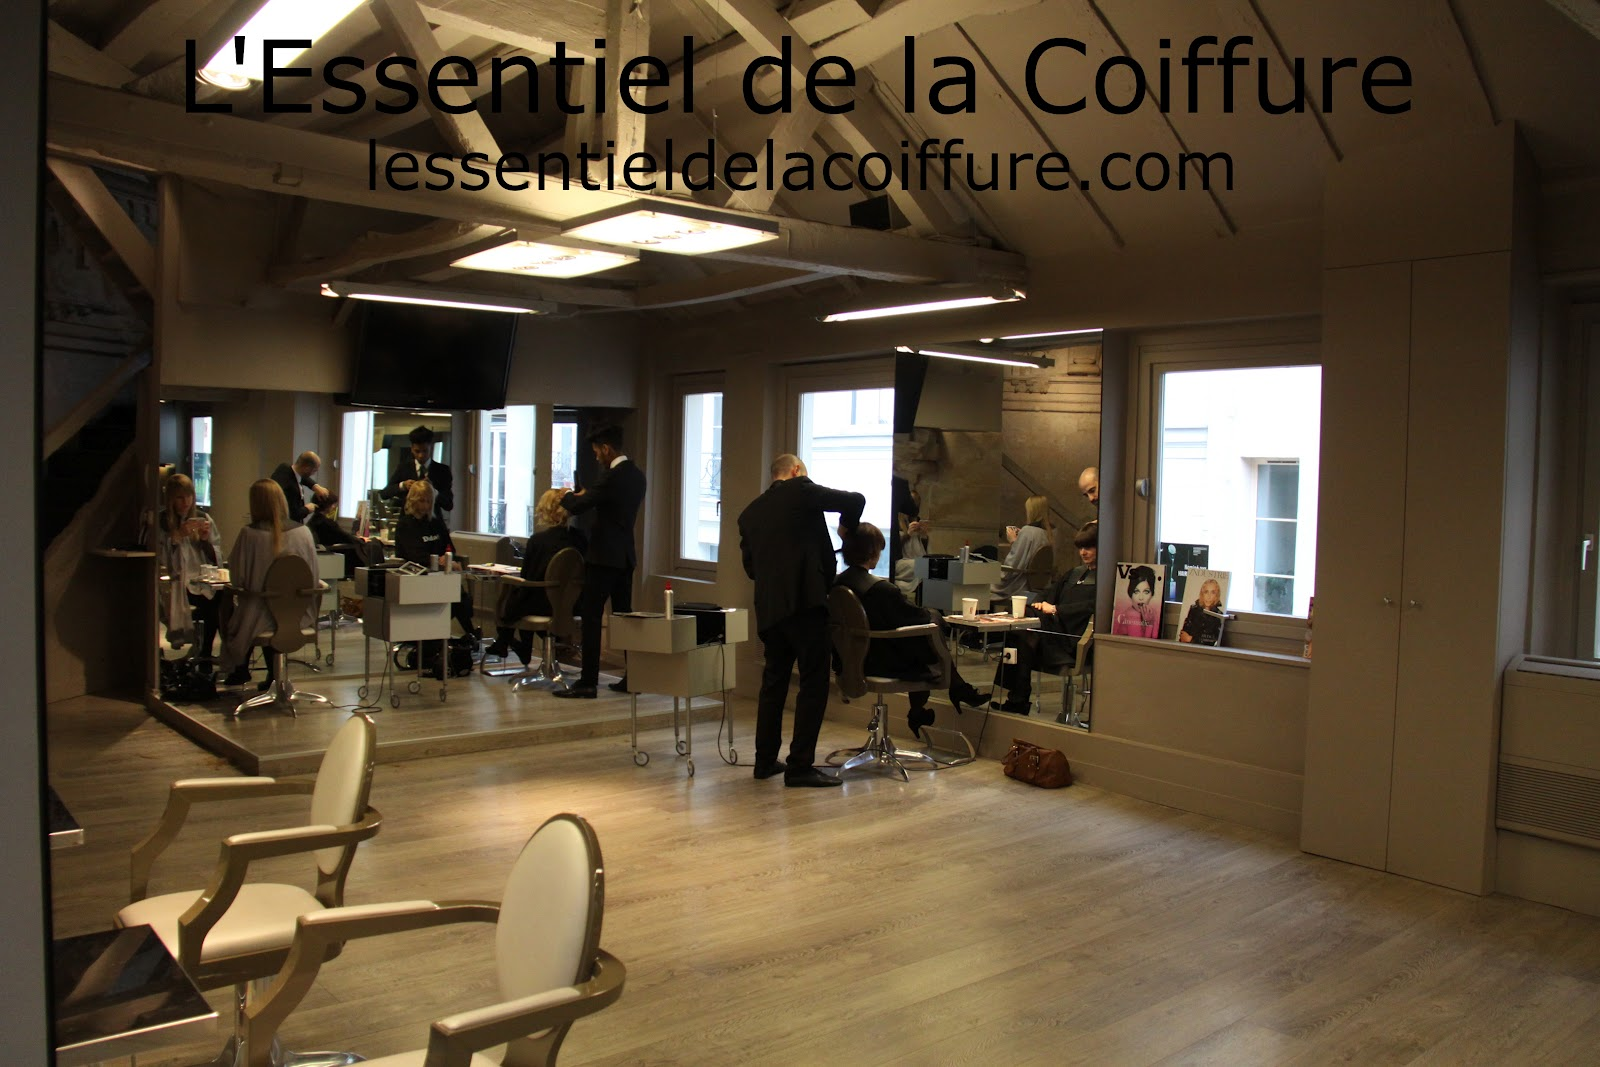 meilleur salon de coiffure paris. Black Bedroom Furniture Sets. Home Design Ideas